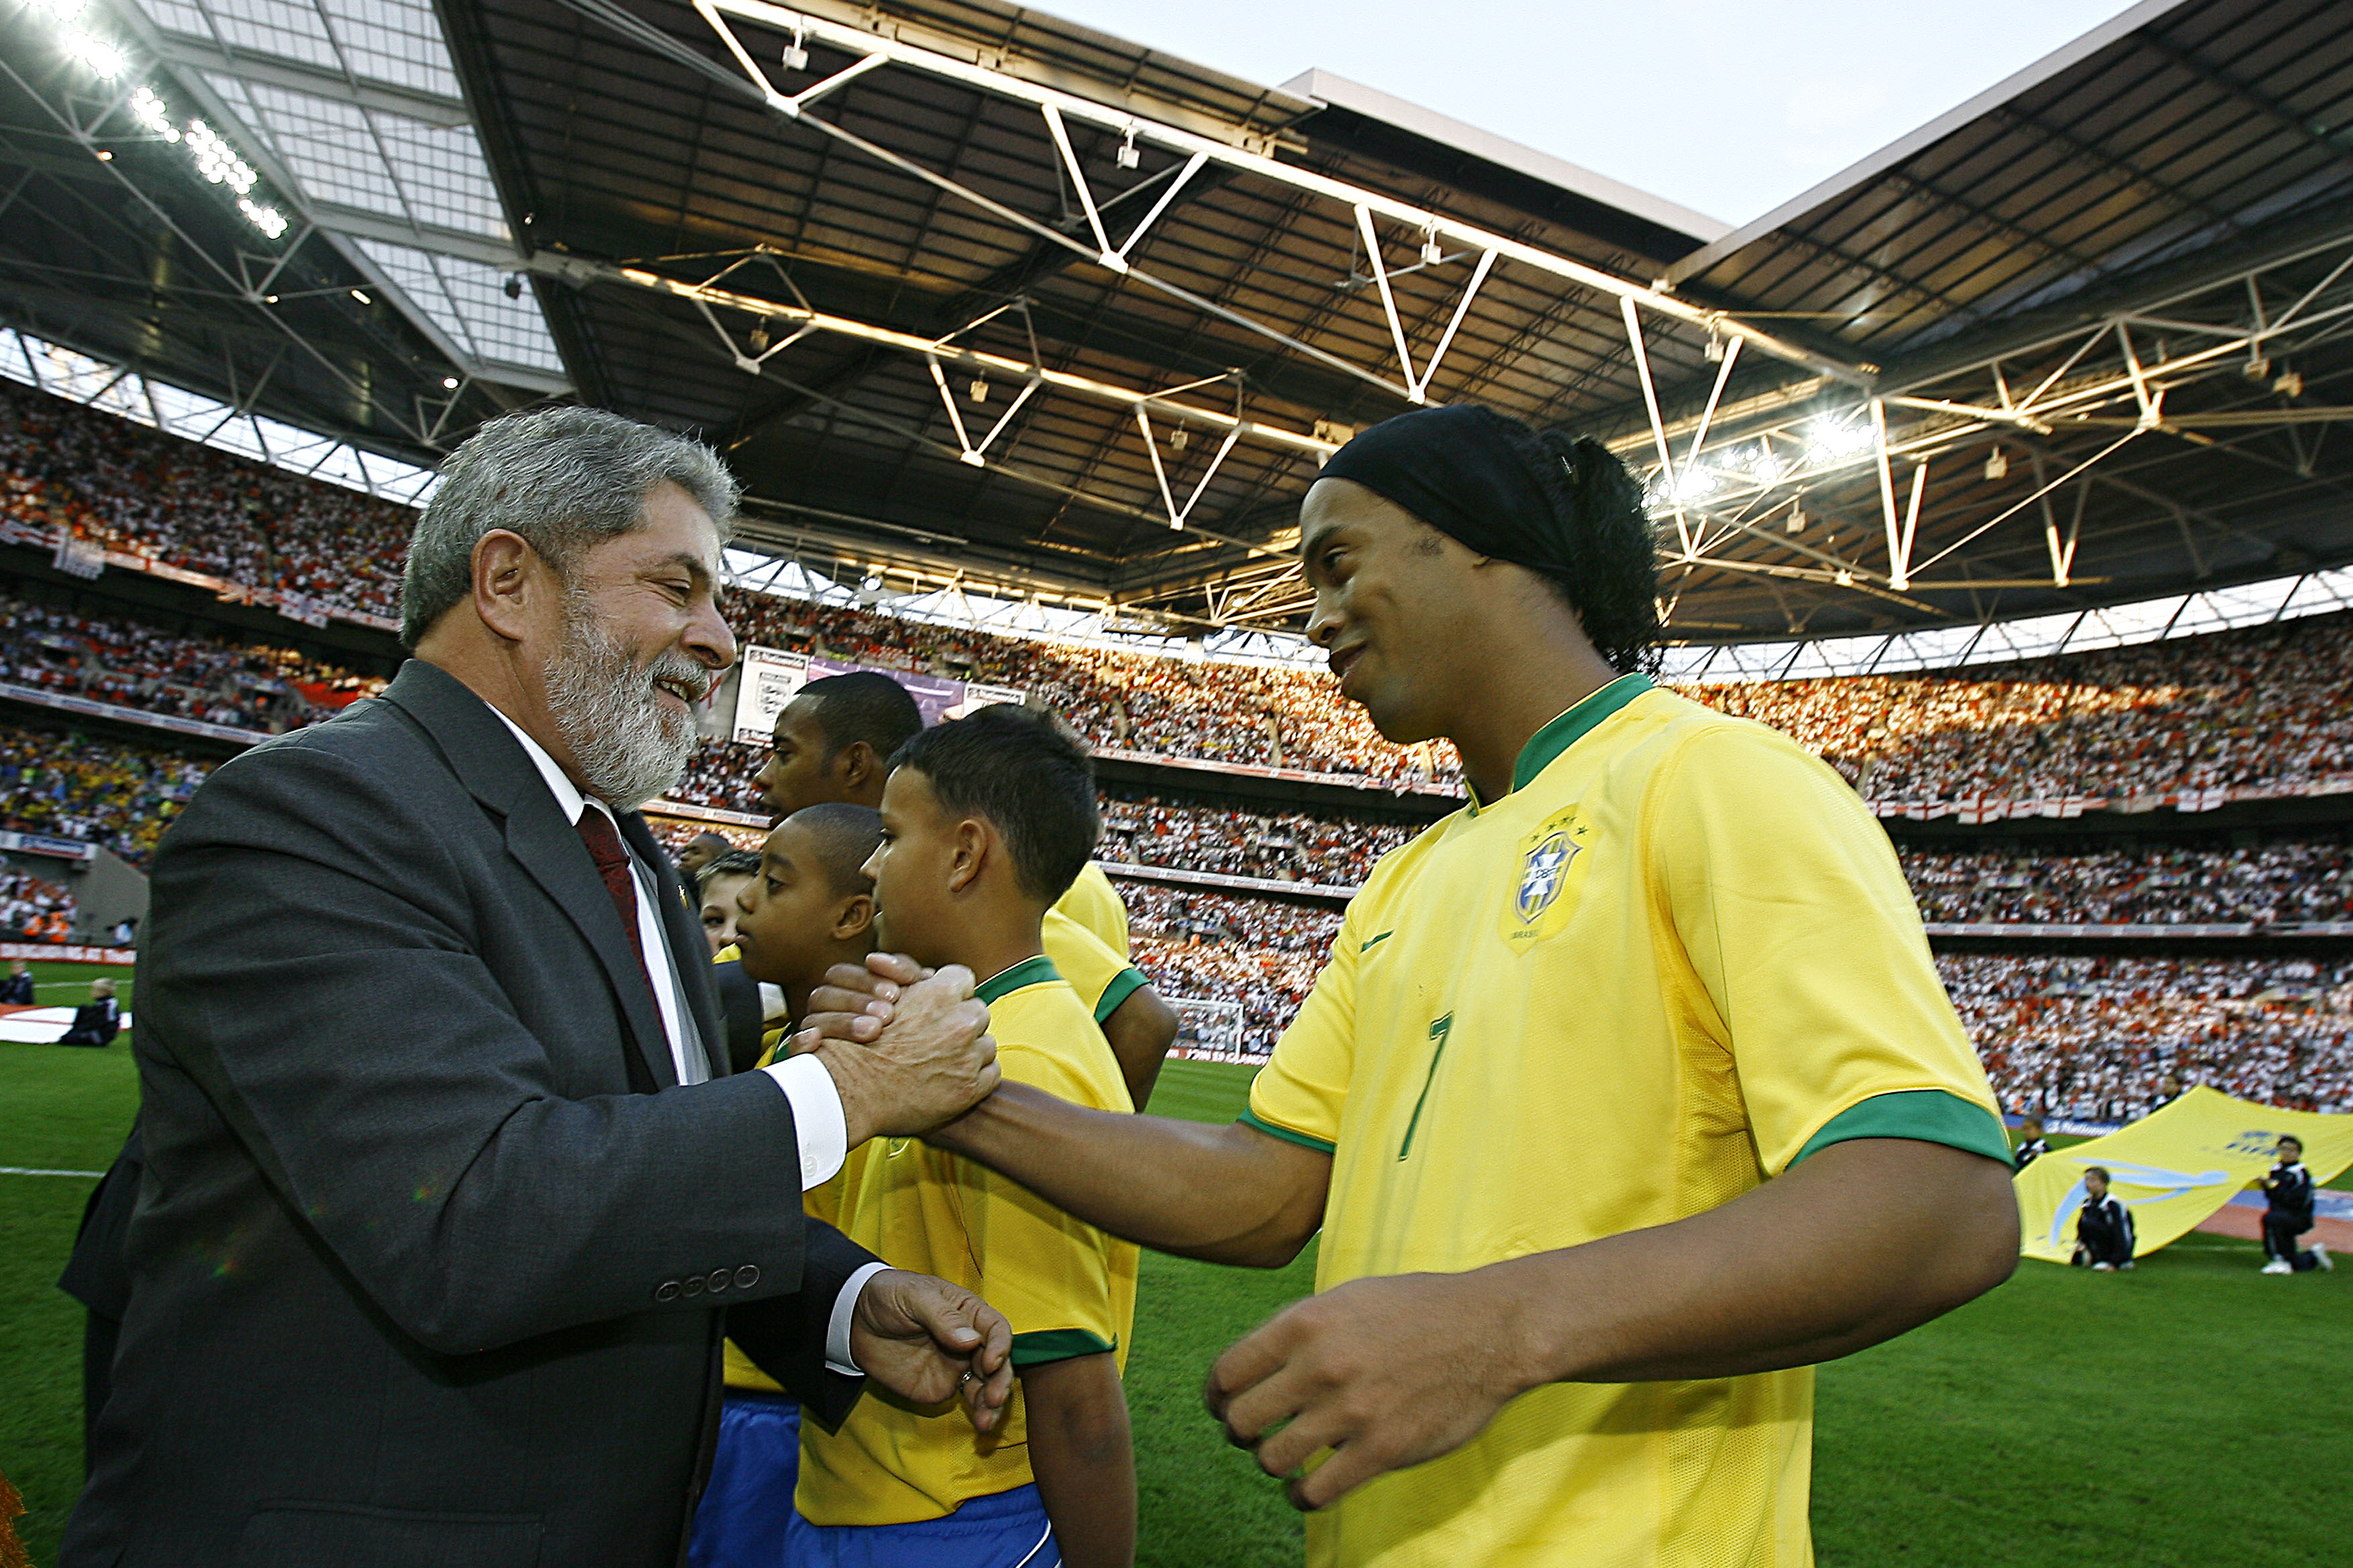 http://upload.wikimedia.org/wikipedia/commons/a/af/Ronaldinho_and_Lula.jpg